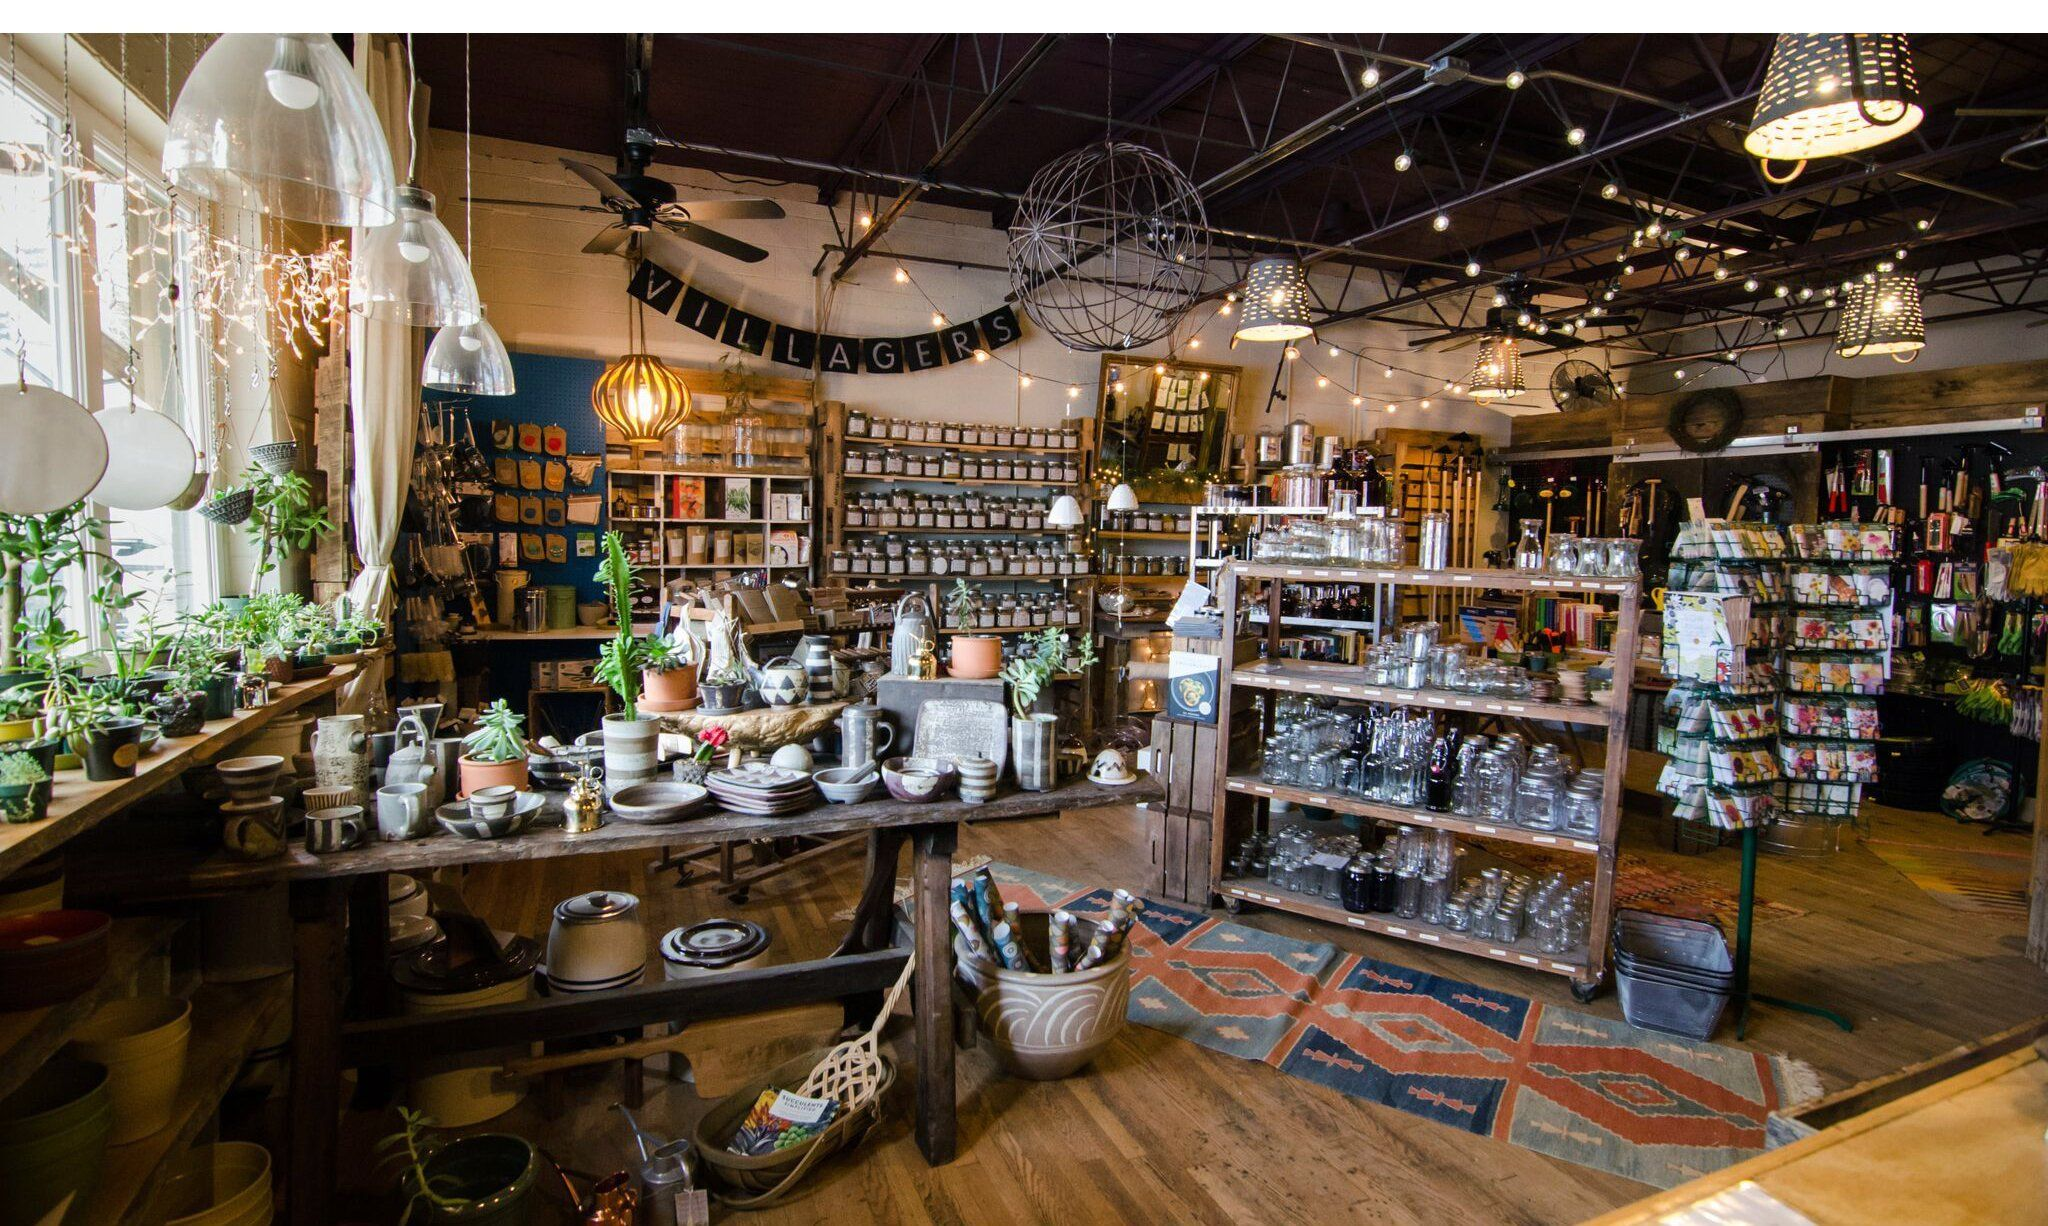 Charmant Villagers Urban Homestead Supply Online Store Located In Asheville North  Carolina. Farm And Garden. Organic. Kitchen Housewares. Sustainable.  Lifestyle.